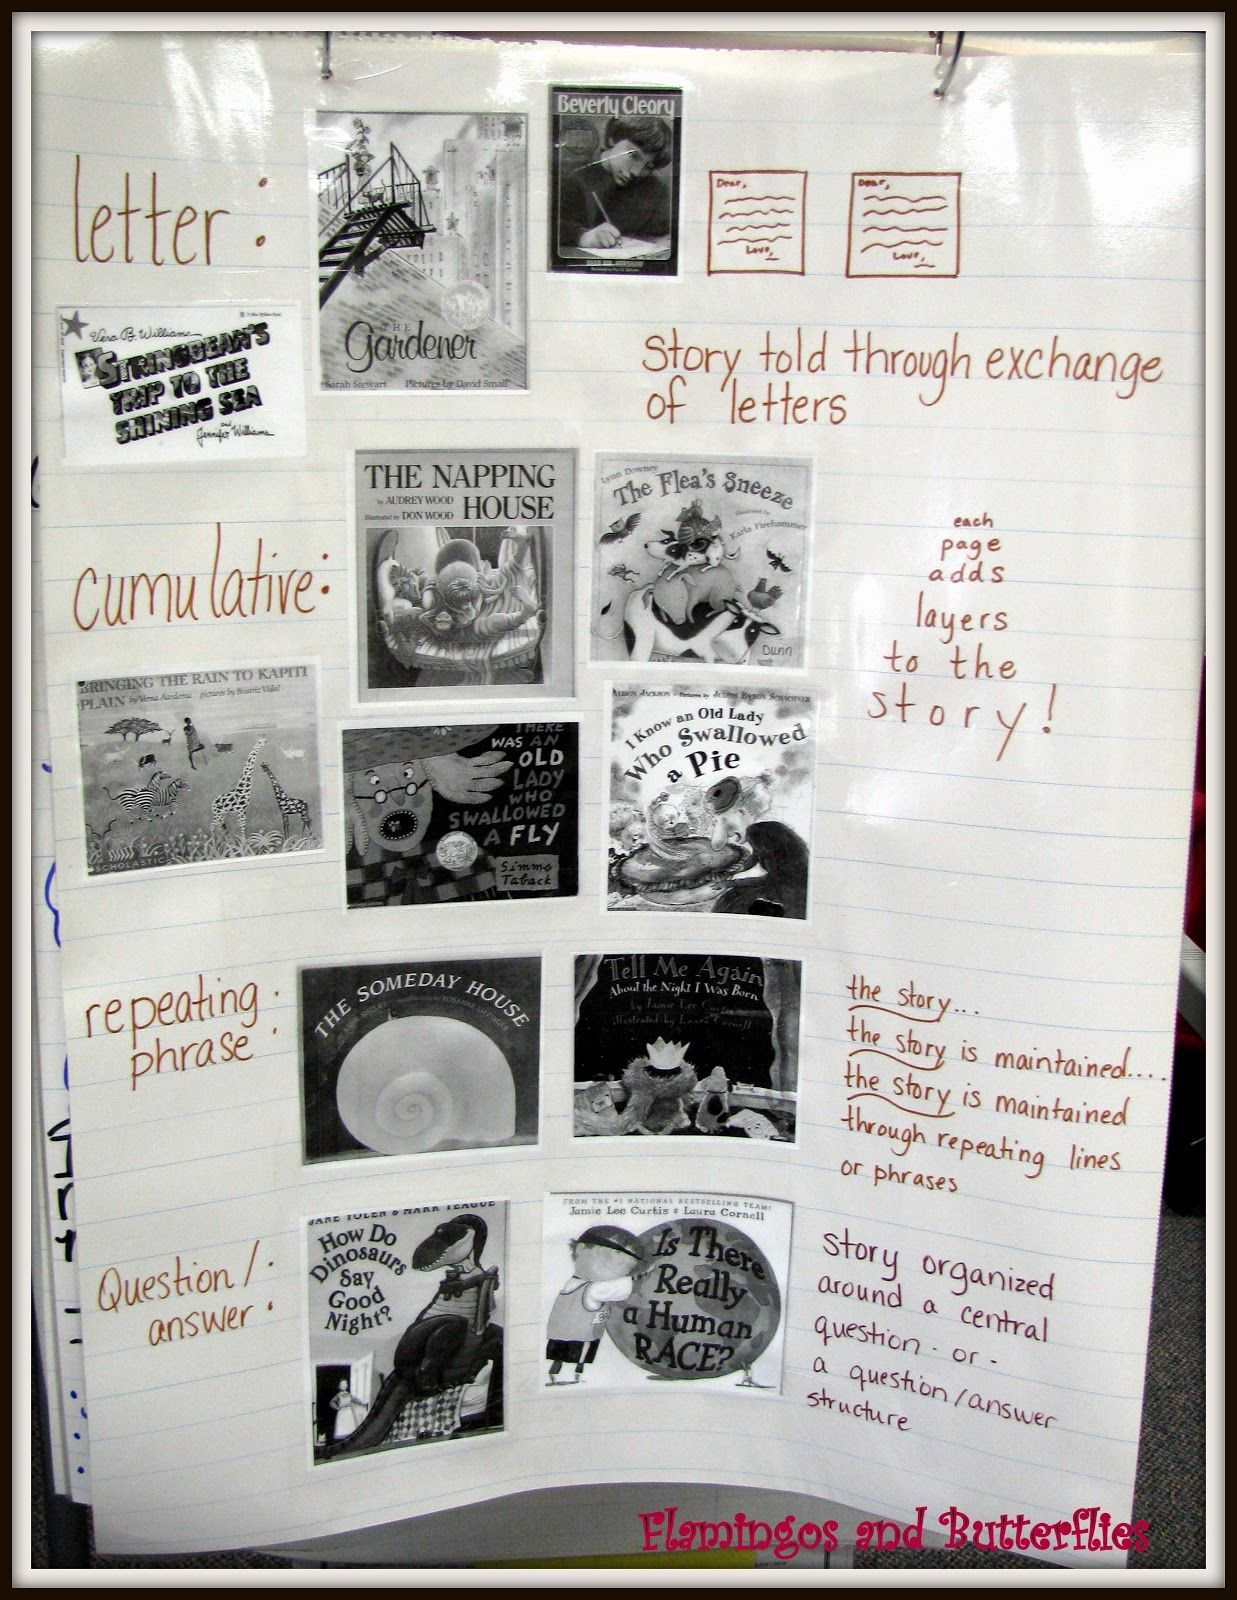 text structure: letter, cumulative, repeating phrases ...